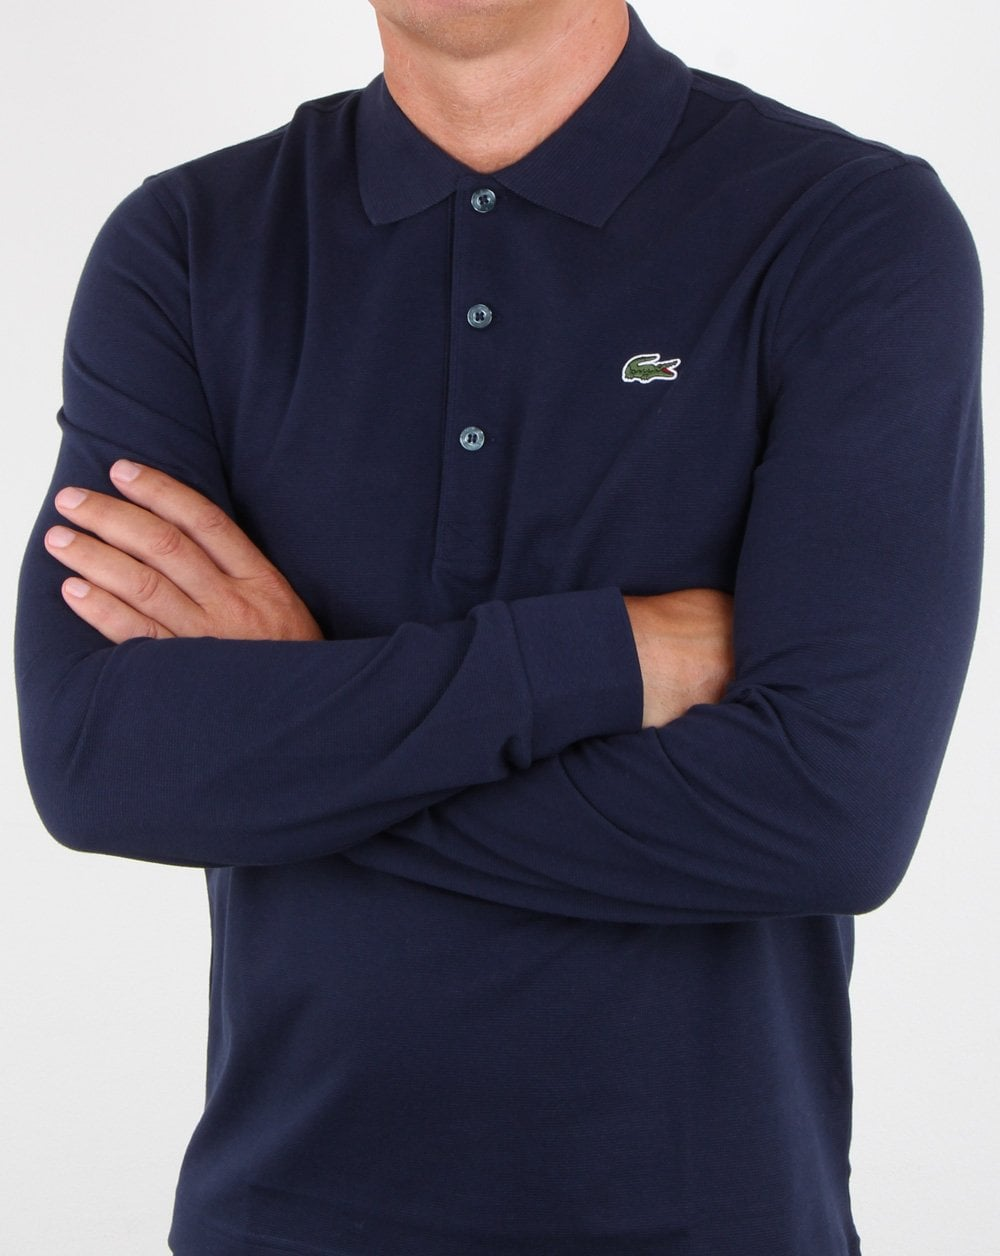 Long Long Navy Lacoste Polo Sleeve Navy Polo Lacoste Sleeve PkOZTXiu